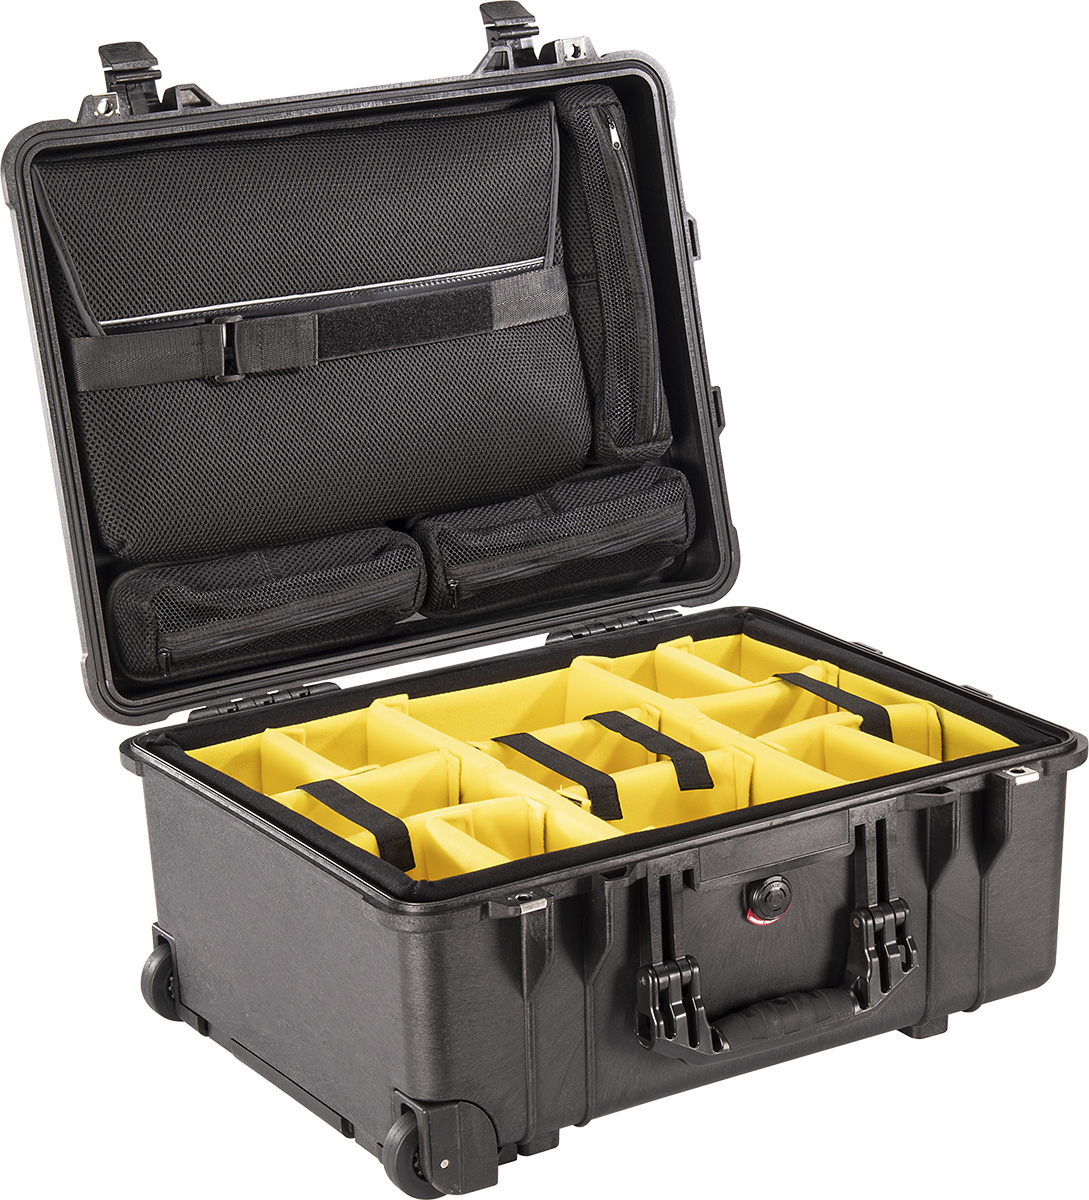 pelican peli products 1560SC protographer camera lens case